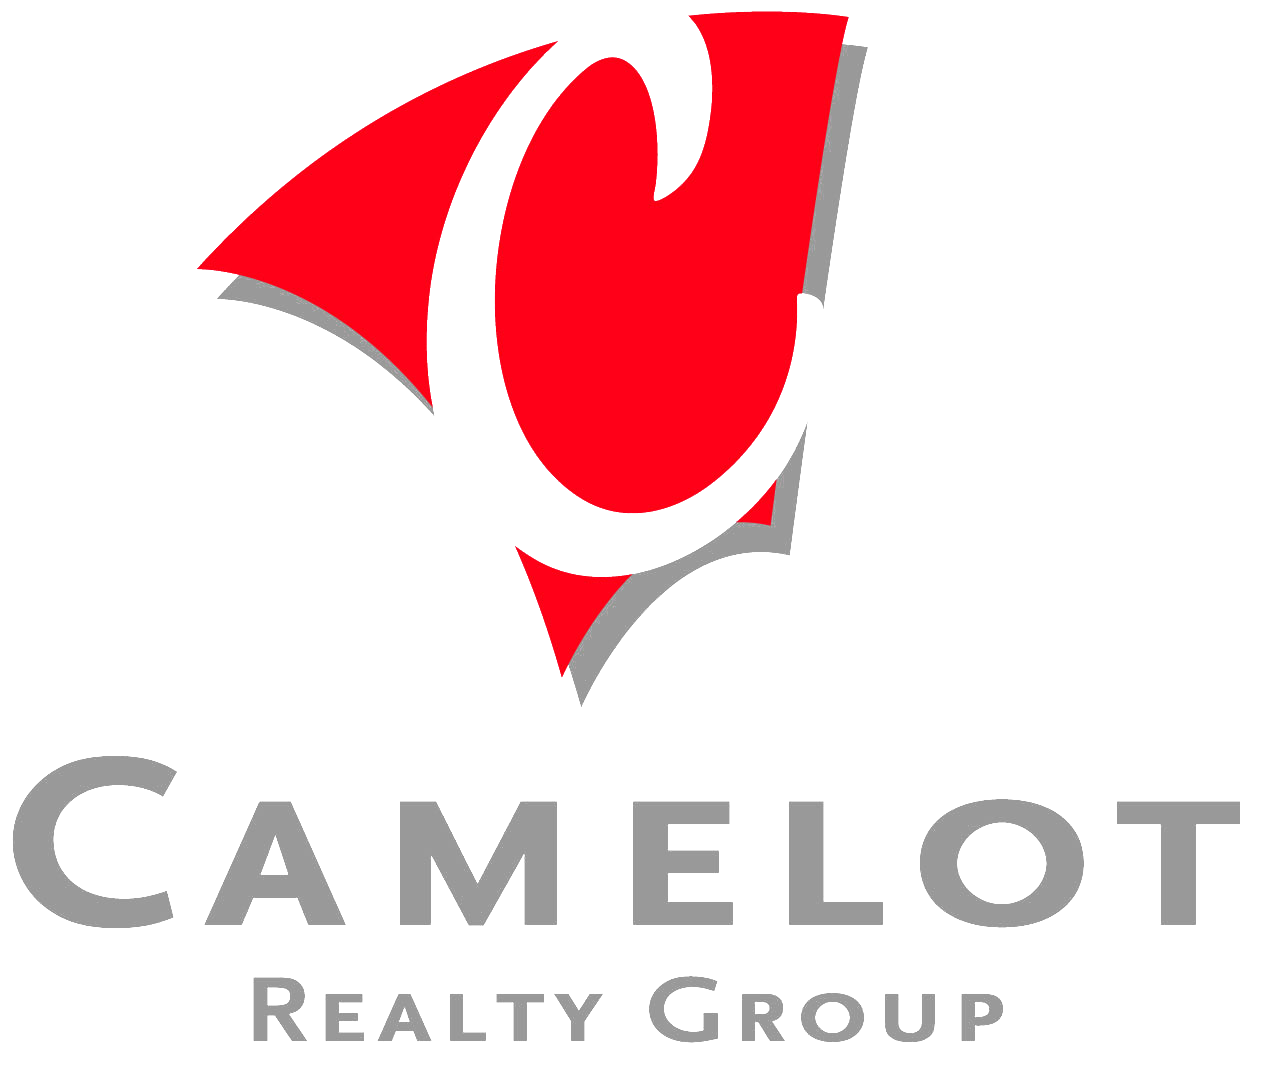 Jim Gray - Camelot Realty Group Logo